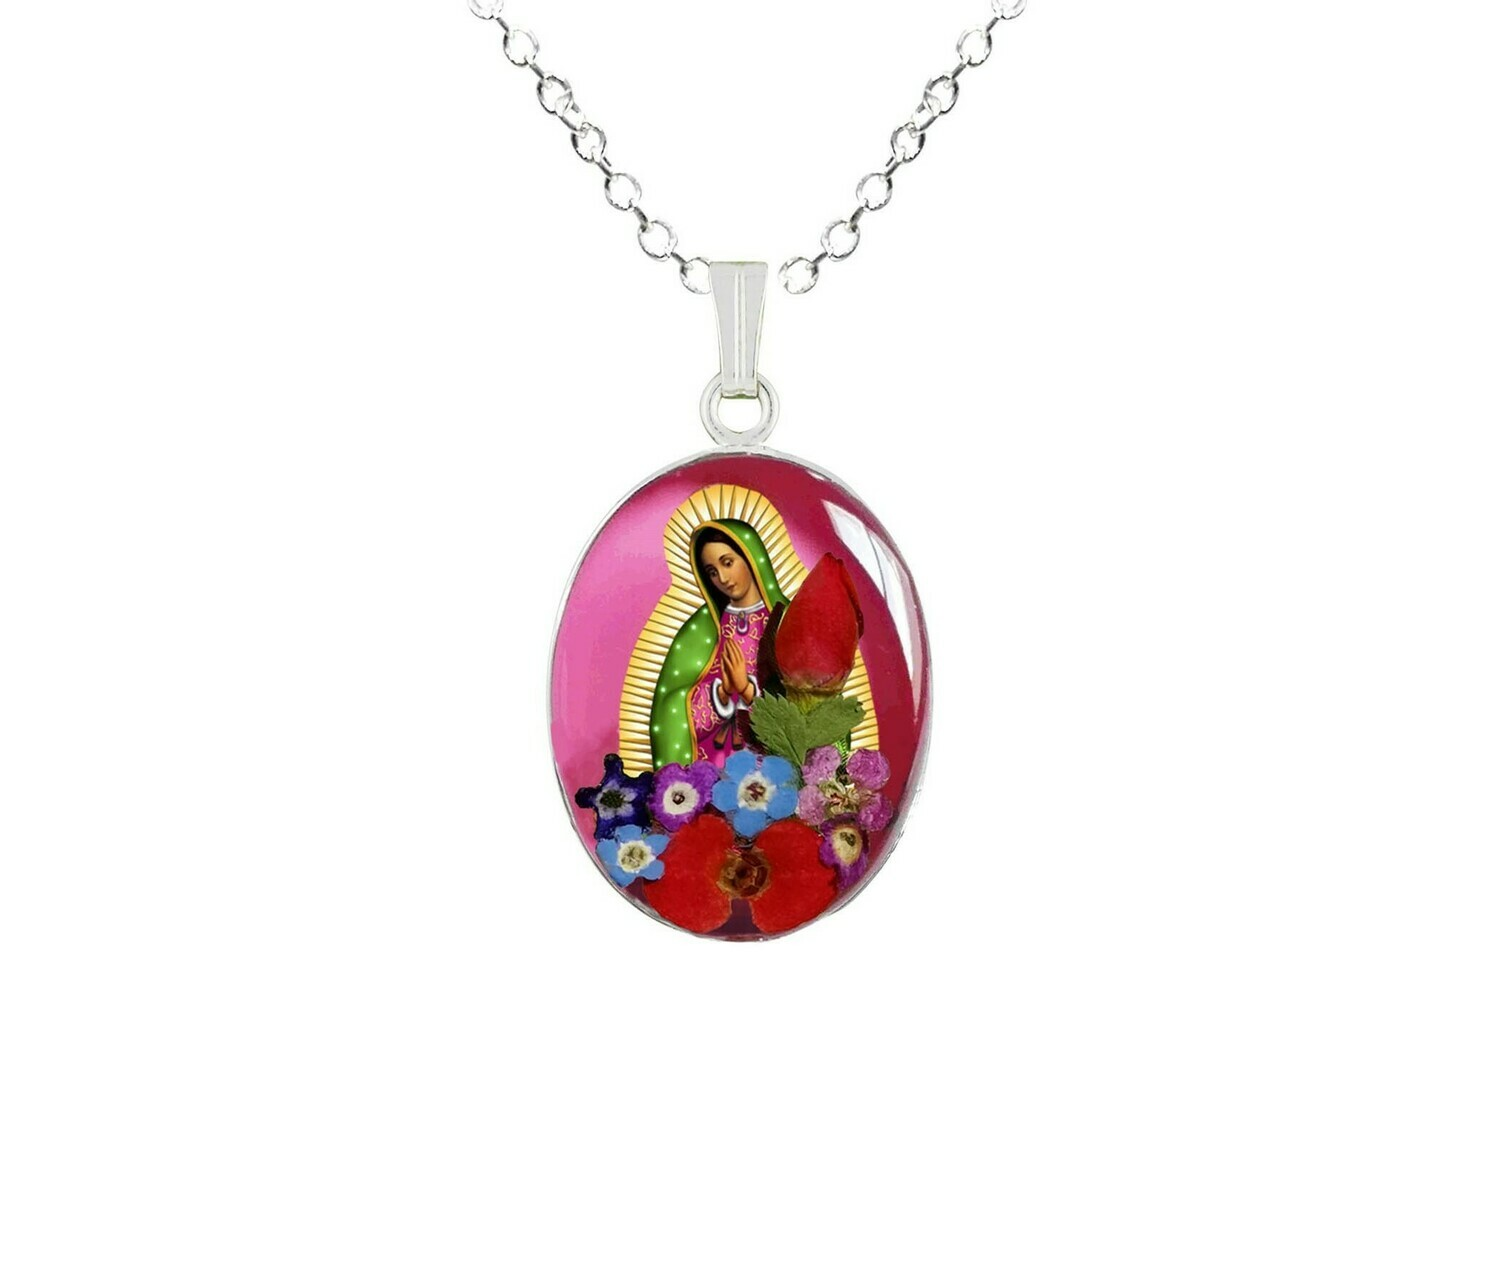 Guadalupe Virgen, Medium Oval Pendant, Pink Background